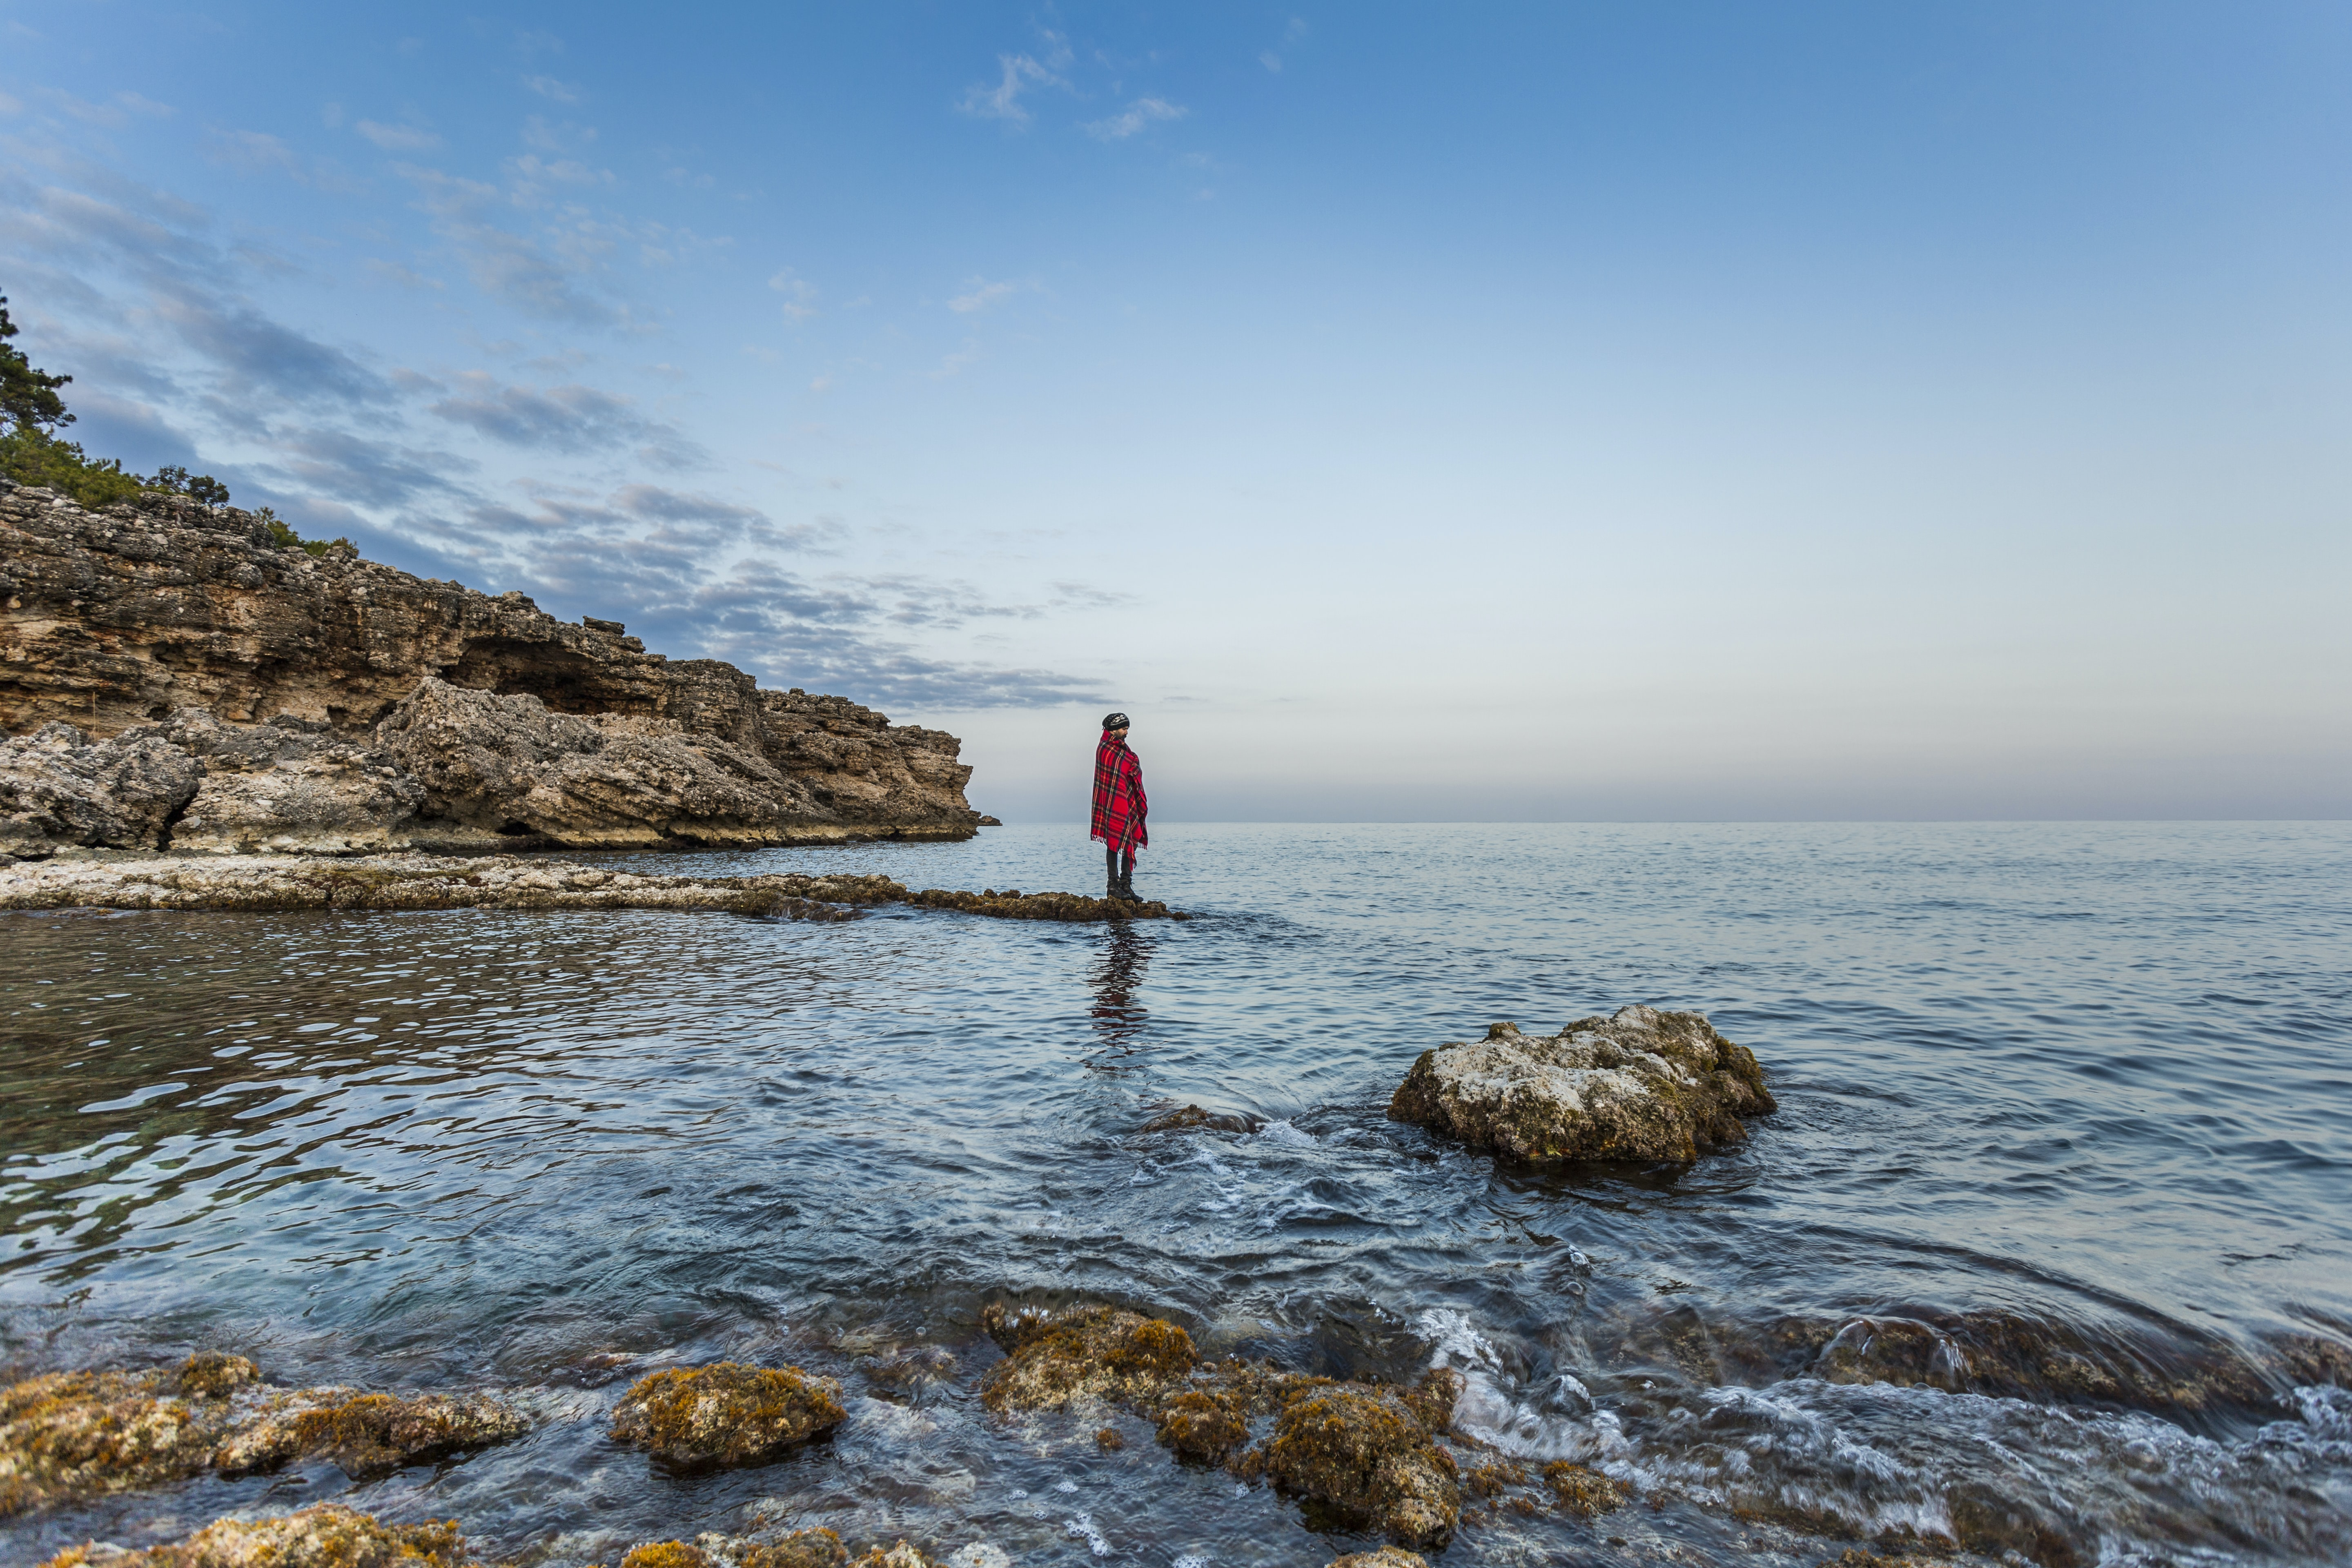 person standing on rock beside body of water during daytime